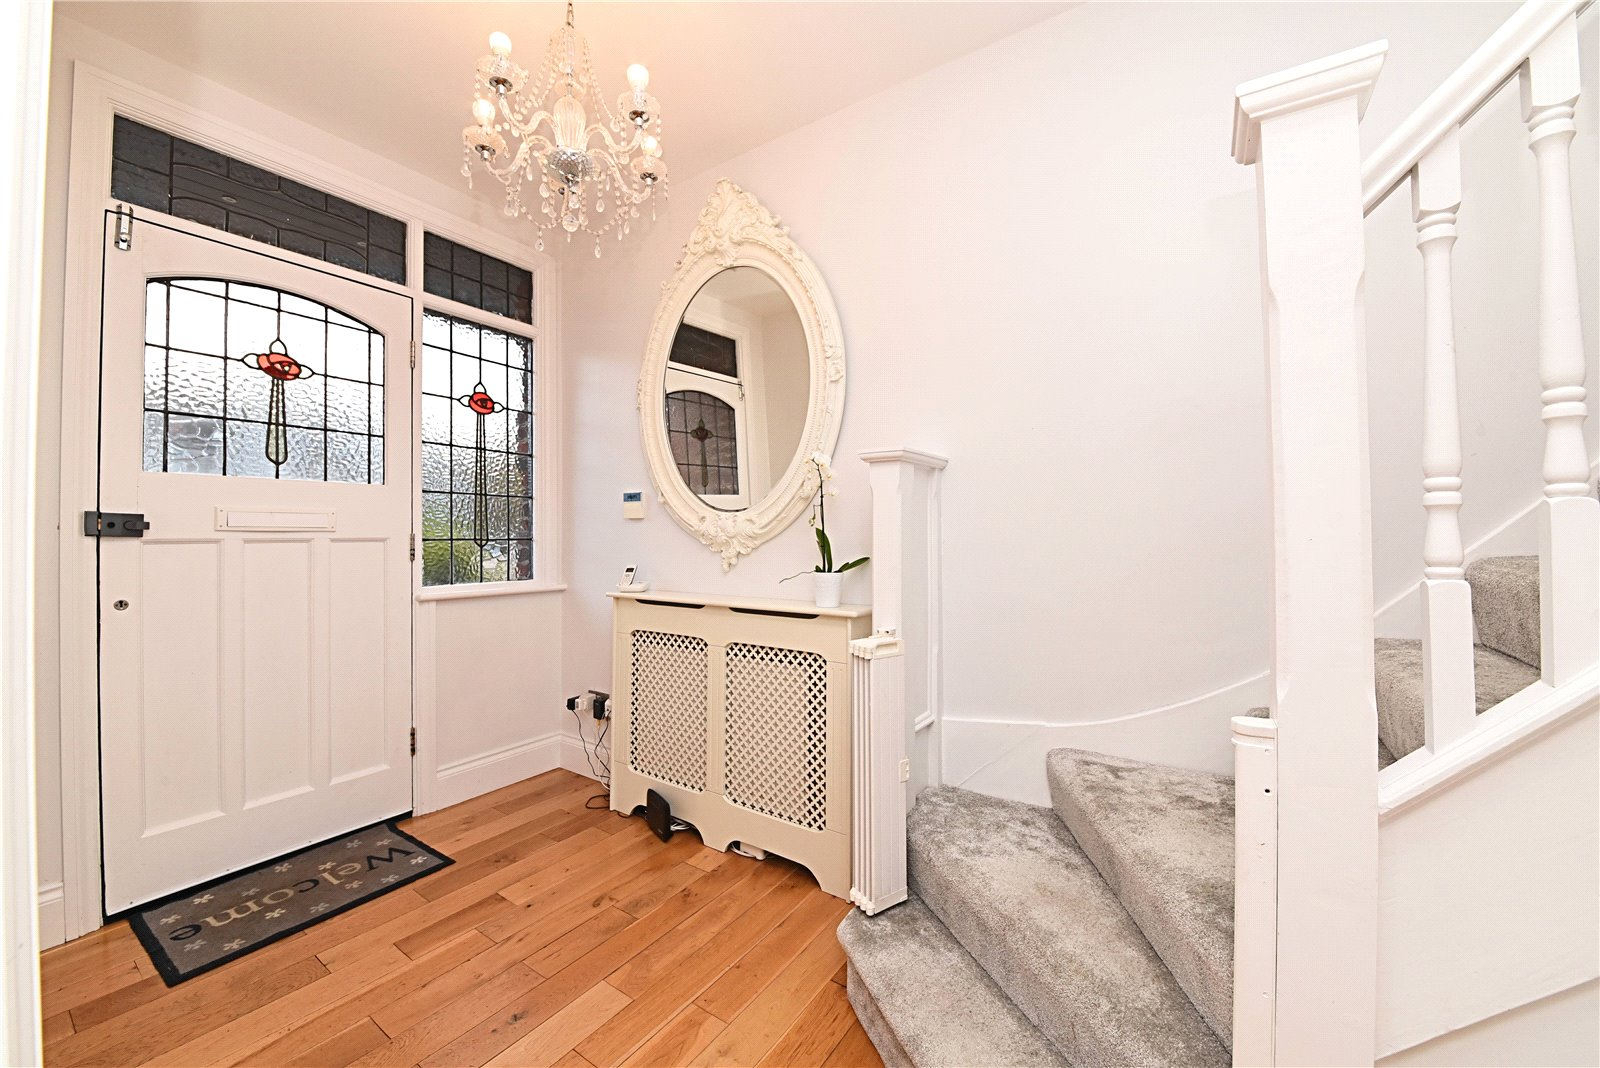 4 bed house for sale in Friern Barnet, N11 1HN 7